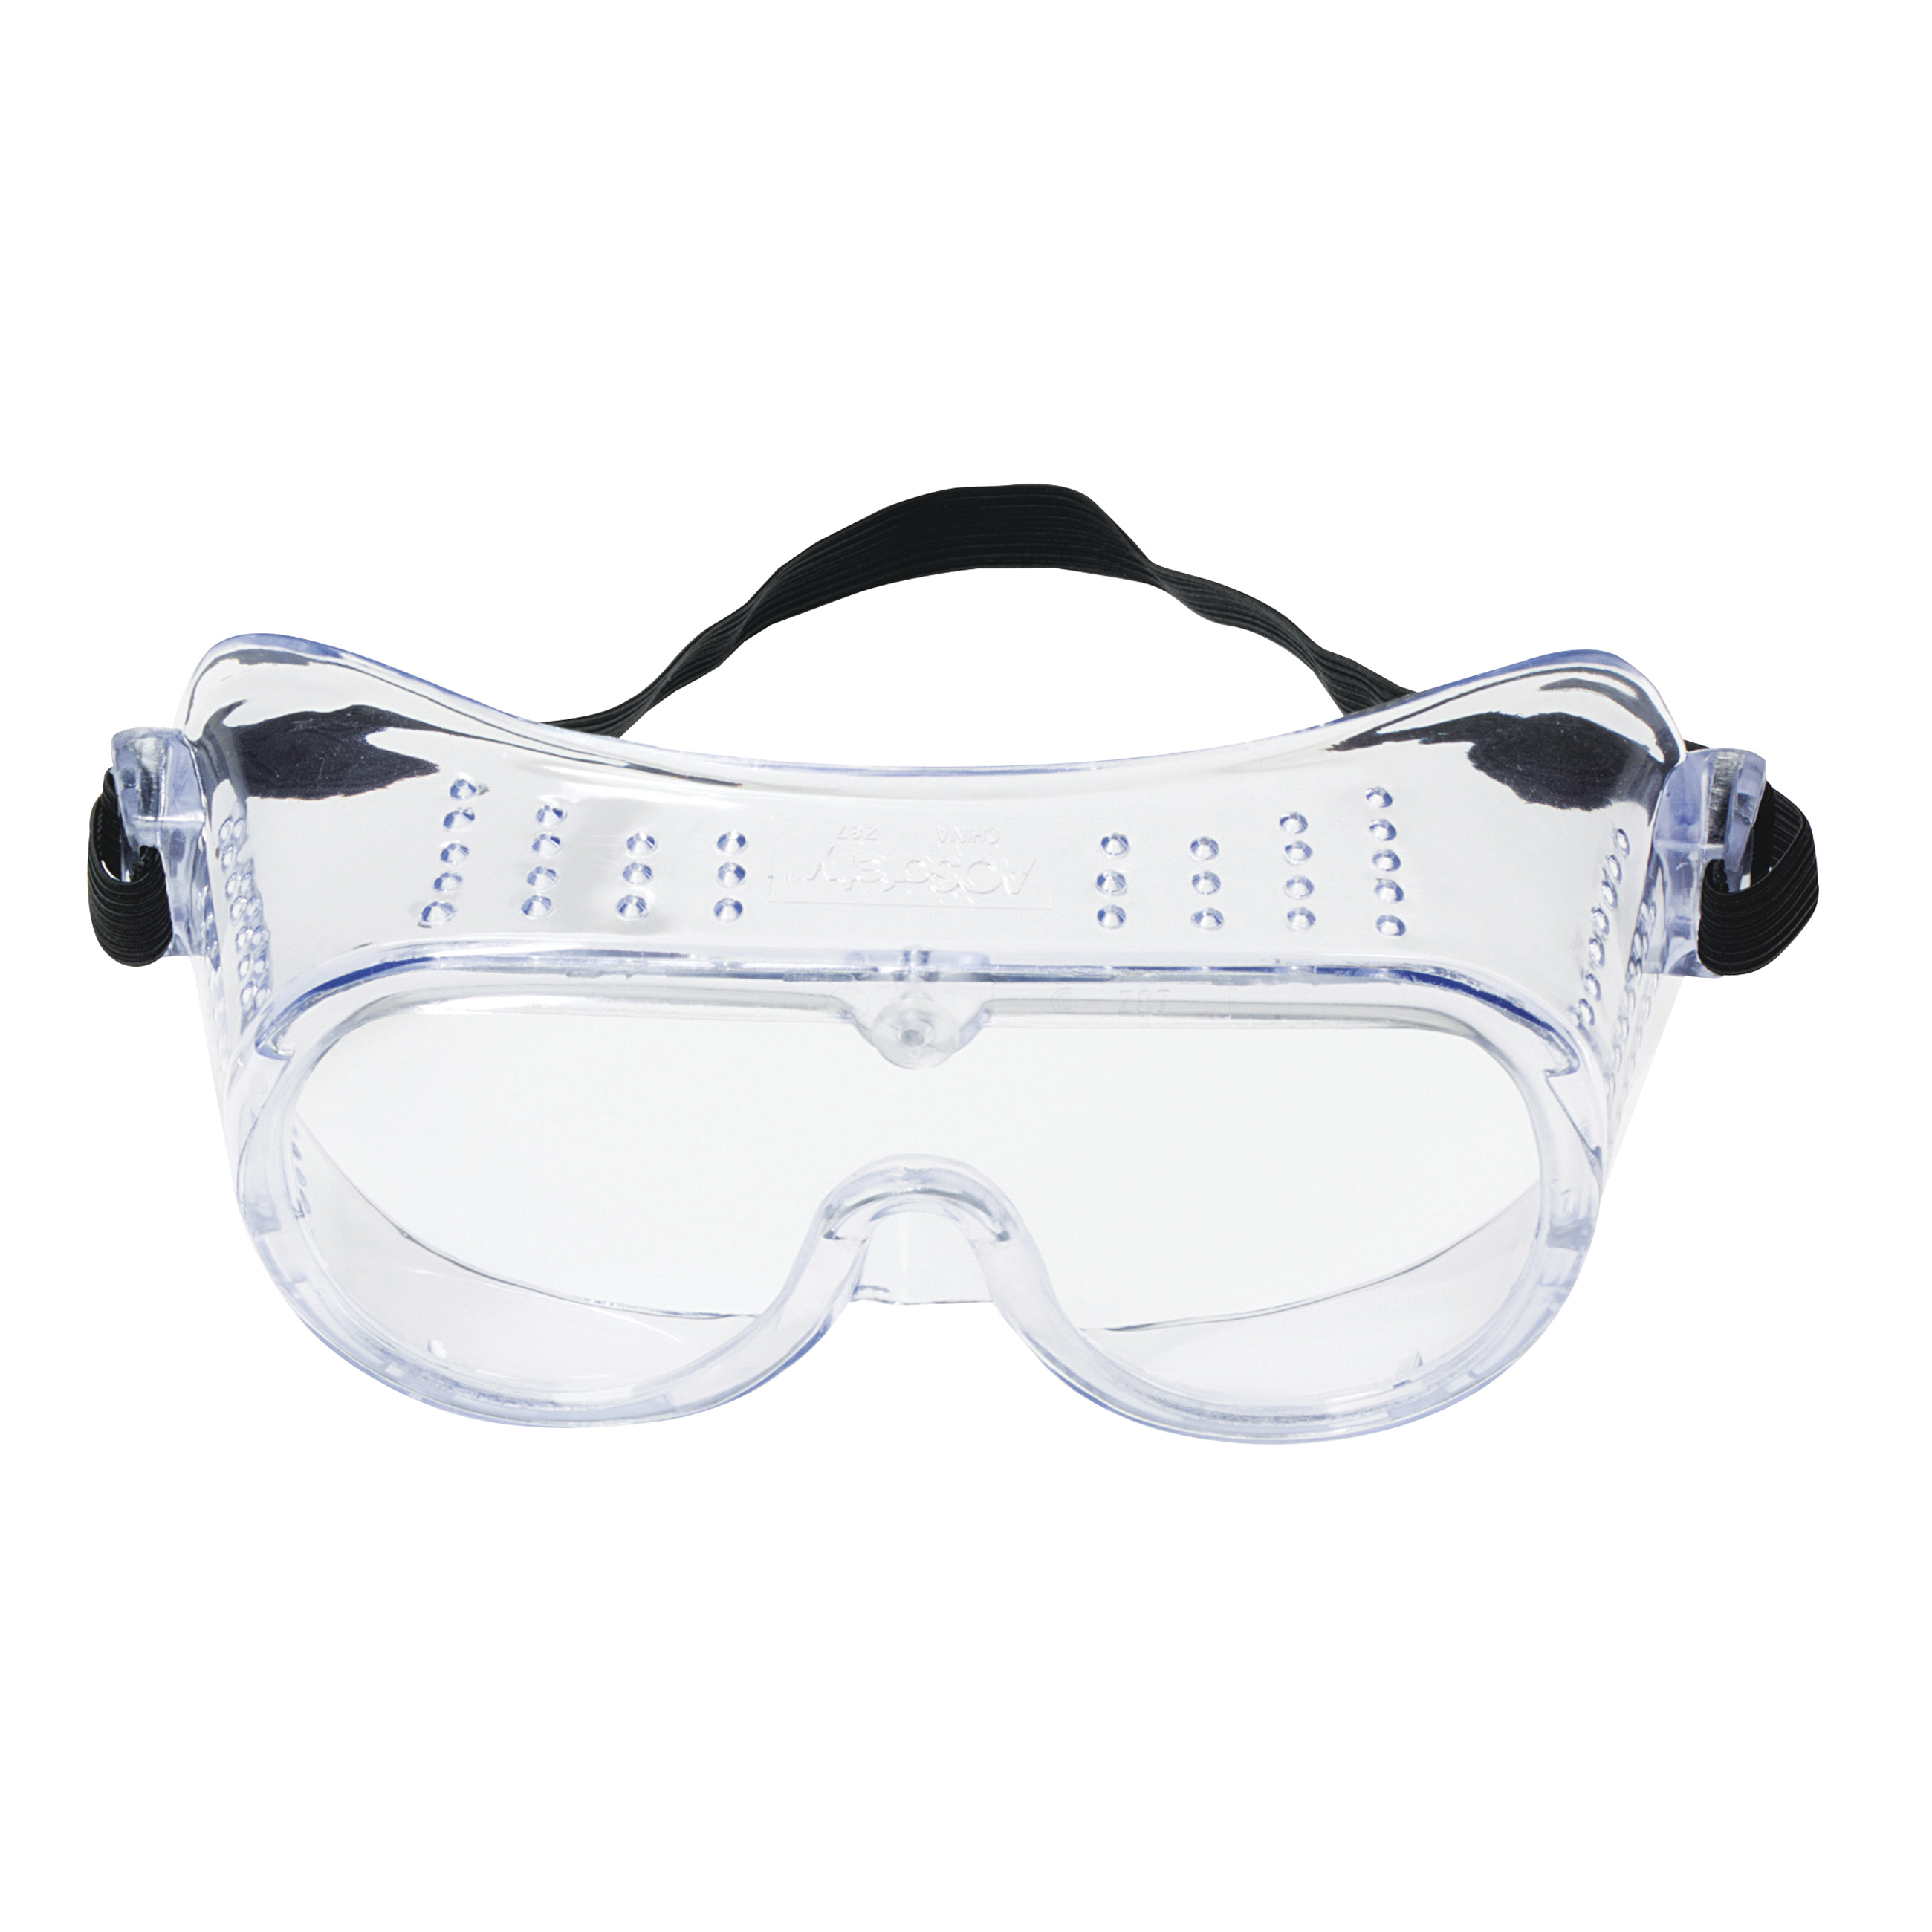 3M™ 078371-62137 Economy Safety Goggles, Anti-Fog/Impact-Resistant/UV-Protective Clear Polycarbonate Lens, 99.9 % UV Protection, Elastic Strap, ANSI Z87.1-2015